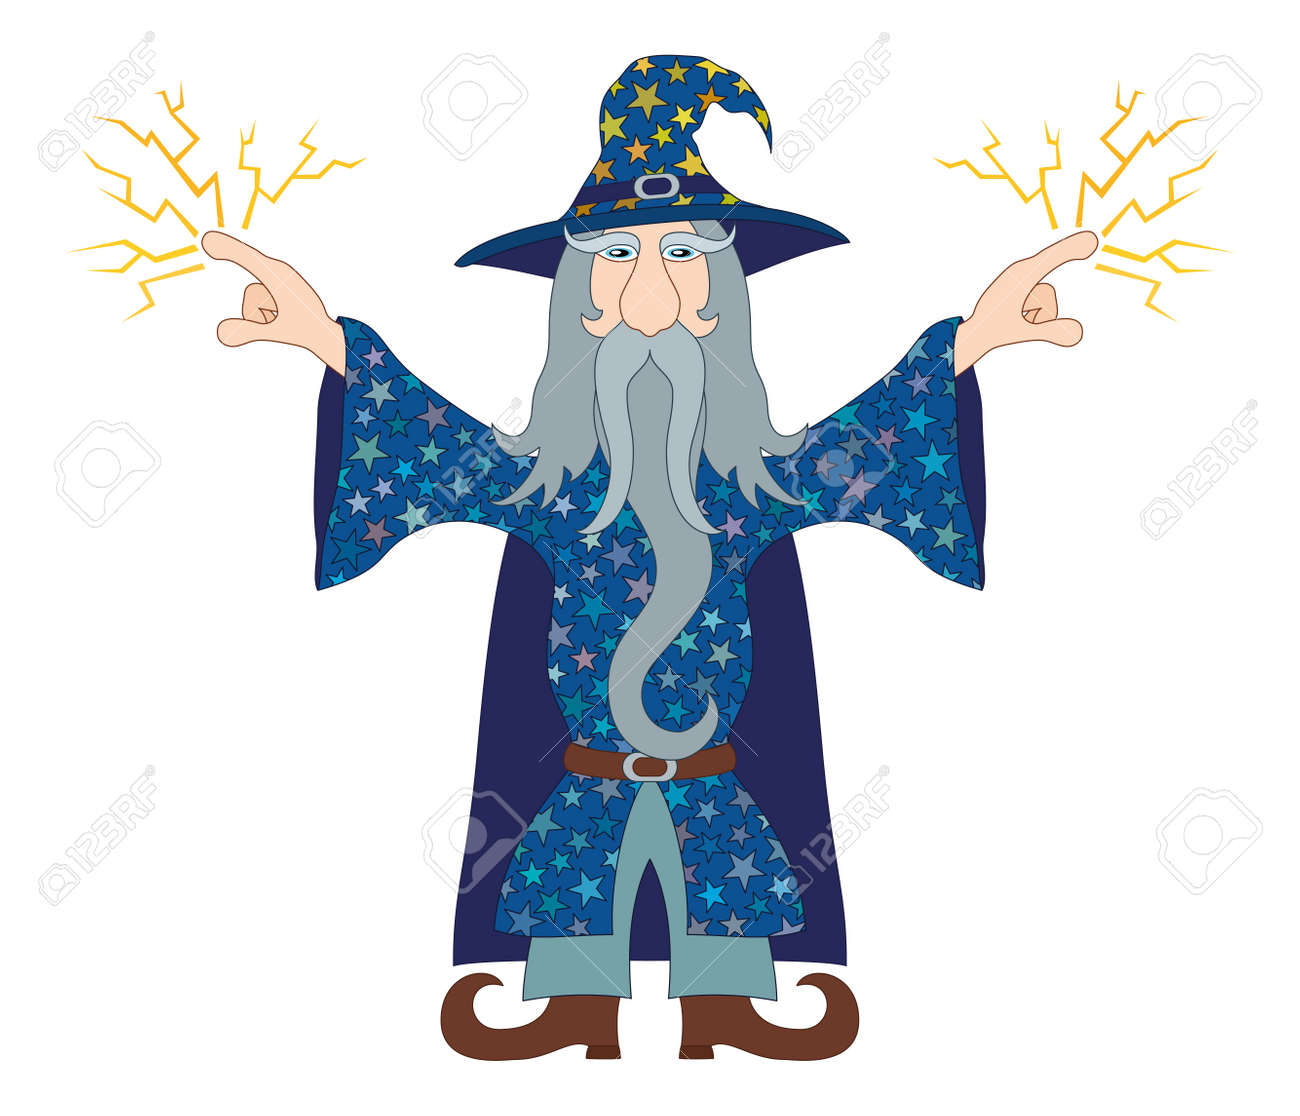 Wizard In Blue Starred Costume Standing With Hands Up And Launches ...